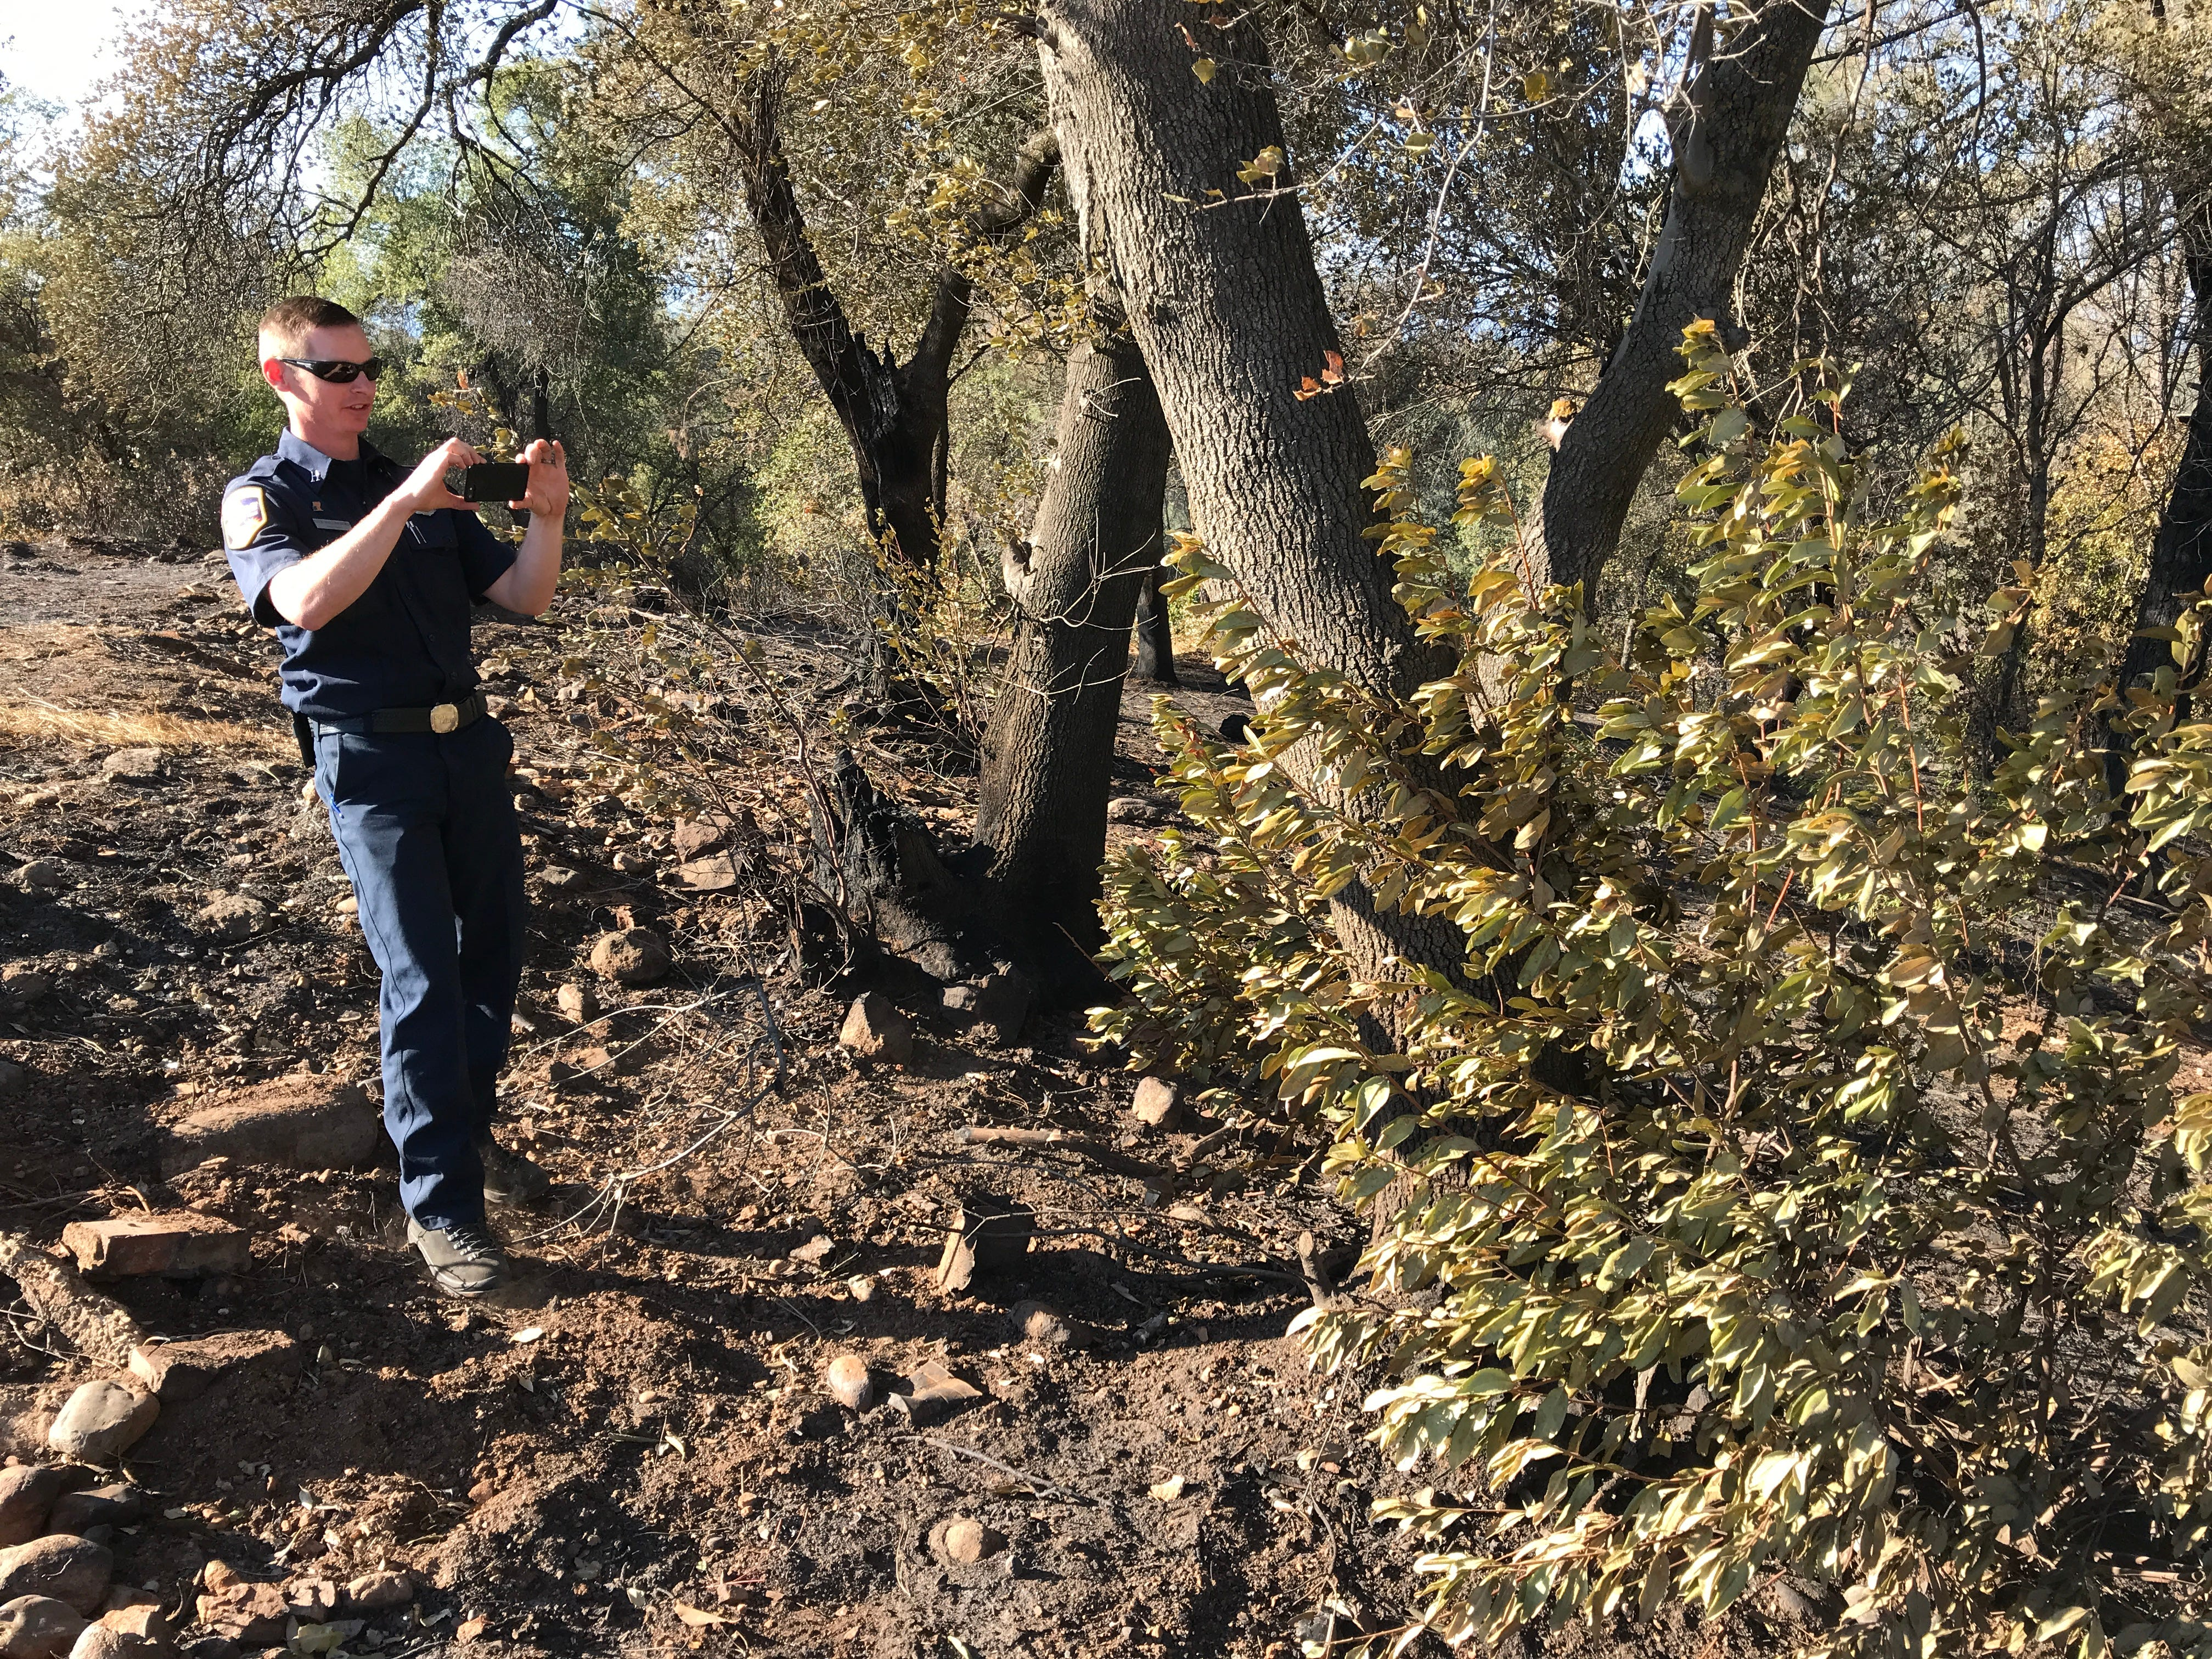 """Nick Wallingford of the California Department of Forestry and Fire Protection takes a photo at the end of Nancy Court of a bush with foliage freeze from the Oct. 14 Masonic Fire. The wind-driven fire gave the green vegetation a windswept appearance by """"freezing"""" the leaves in one direction. A defensible-space project that was done in the area is credited with preventing a widespread loss of homes."""